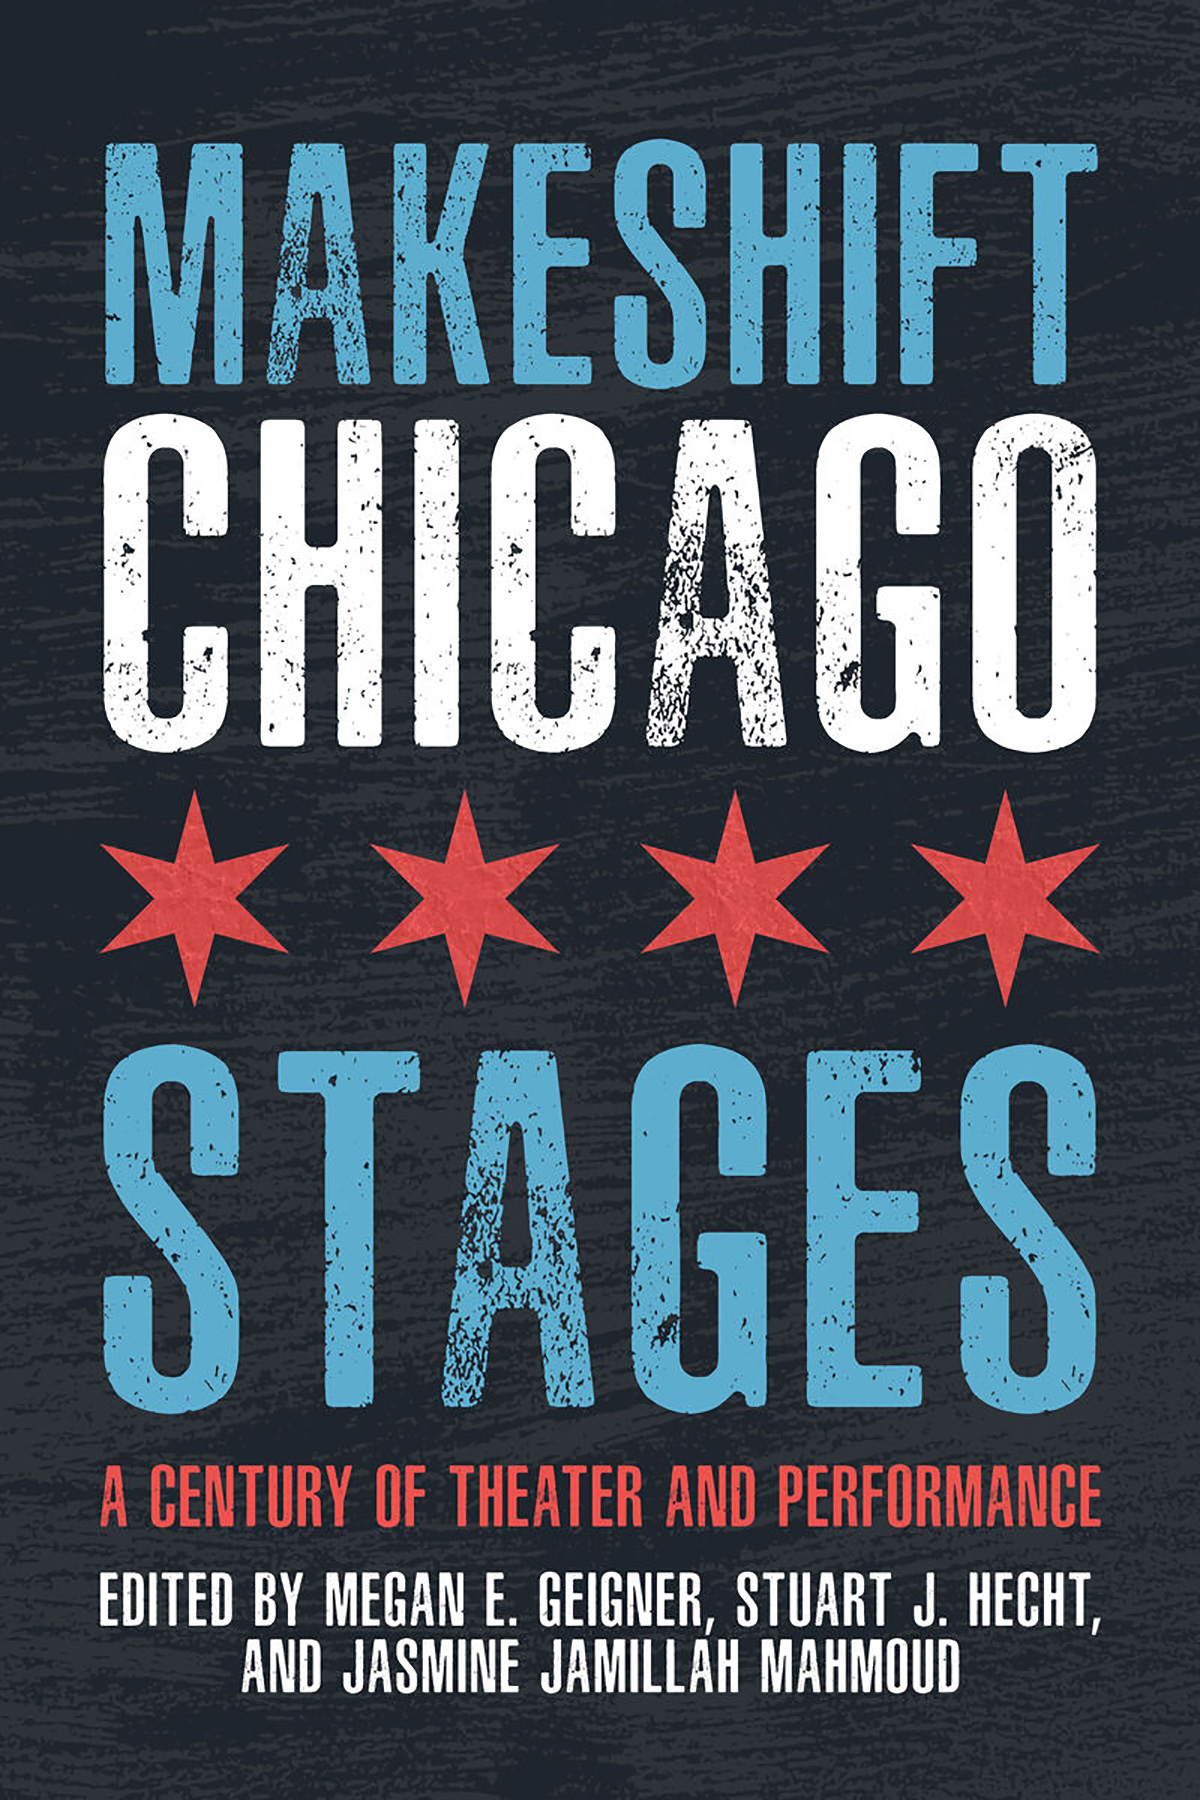 Cover art for the book Makeshift Chicago Stages